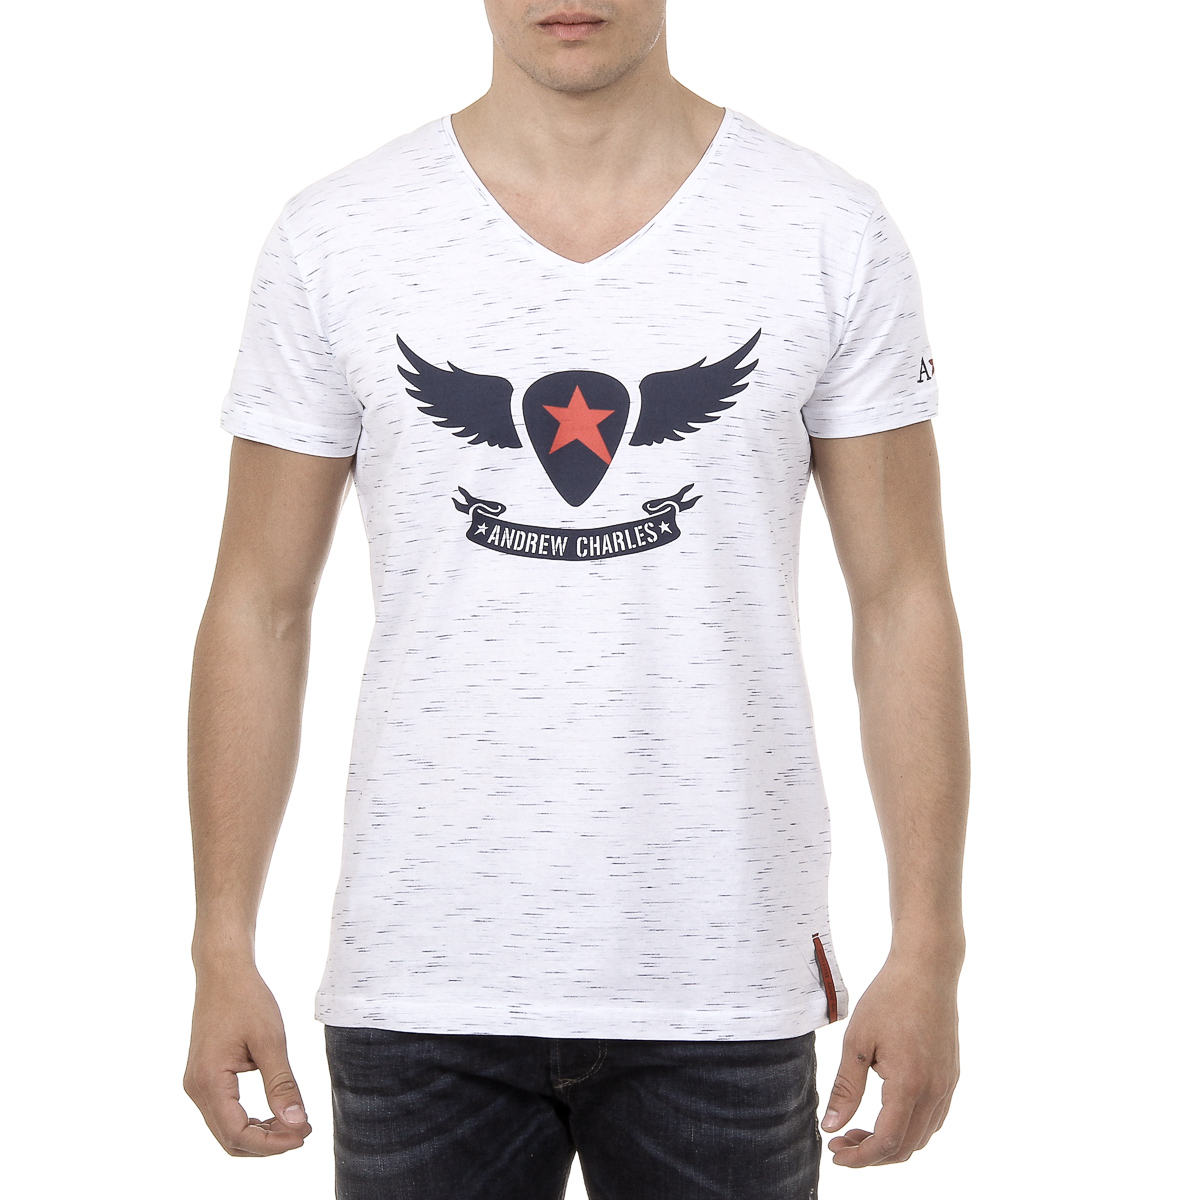 Primary image for Andrew Charles Mens T-Shirt Short Sleeves V-Neck White AARON